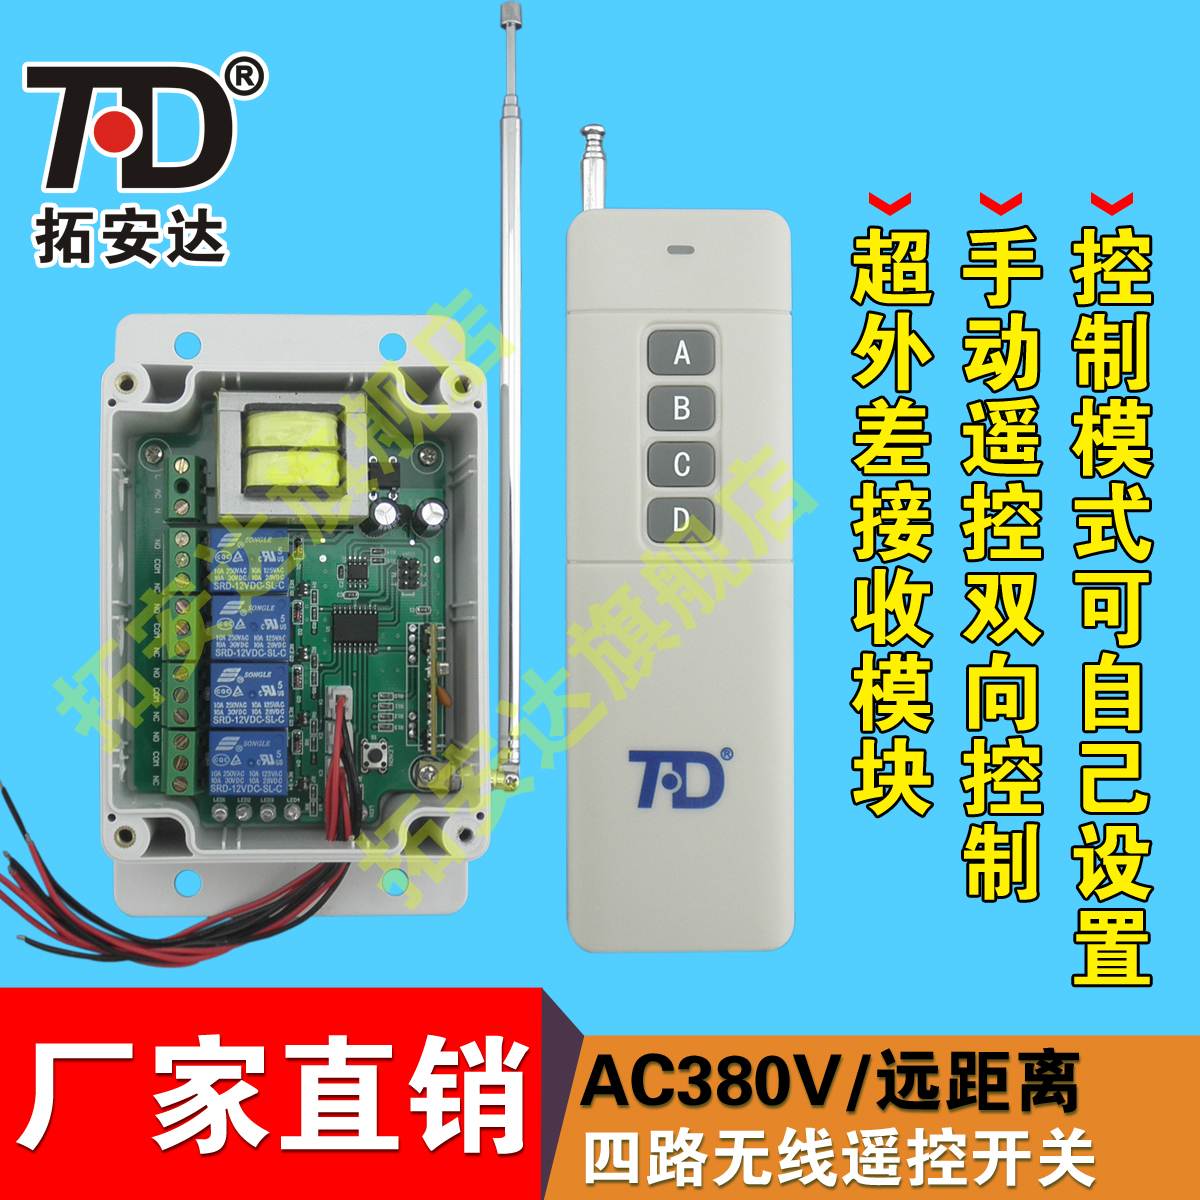 380V Wireless Remote Control Switch Four Way Three-phase Correct Reversal Electric Machinery Pump Wireless Controller SWITCH цена 2017